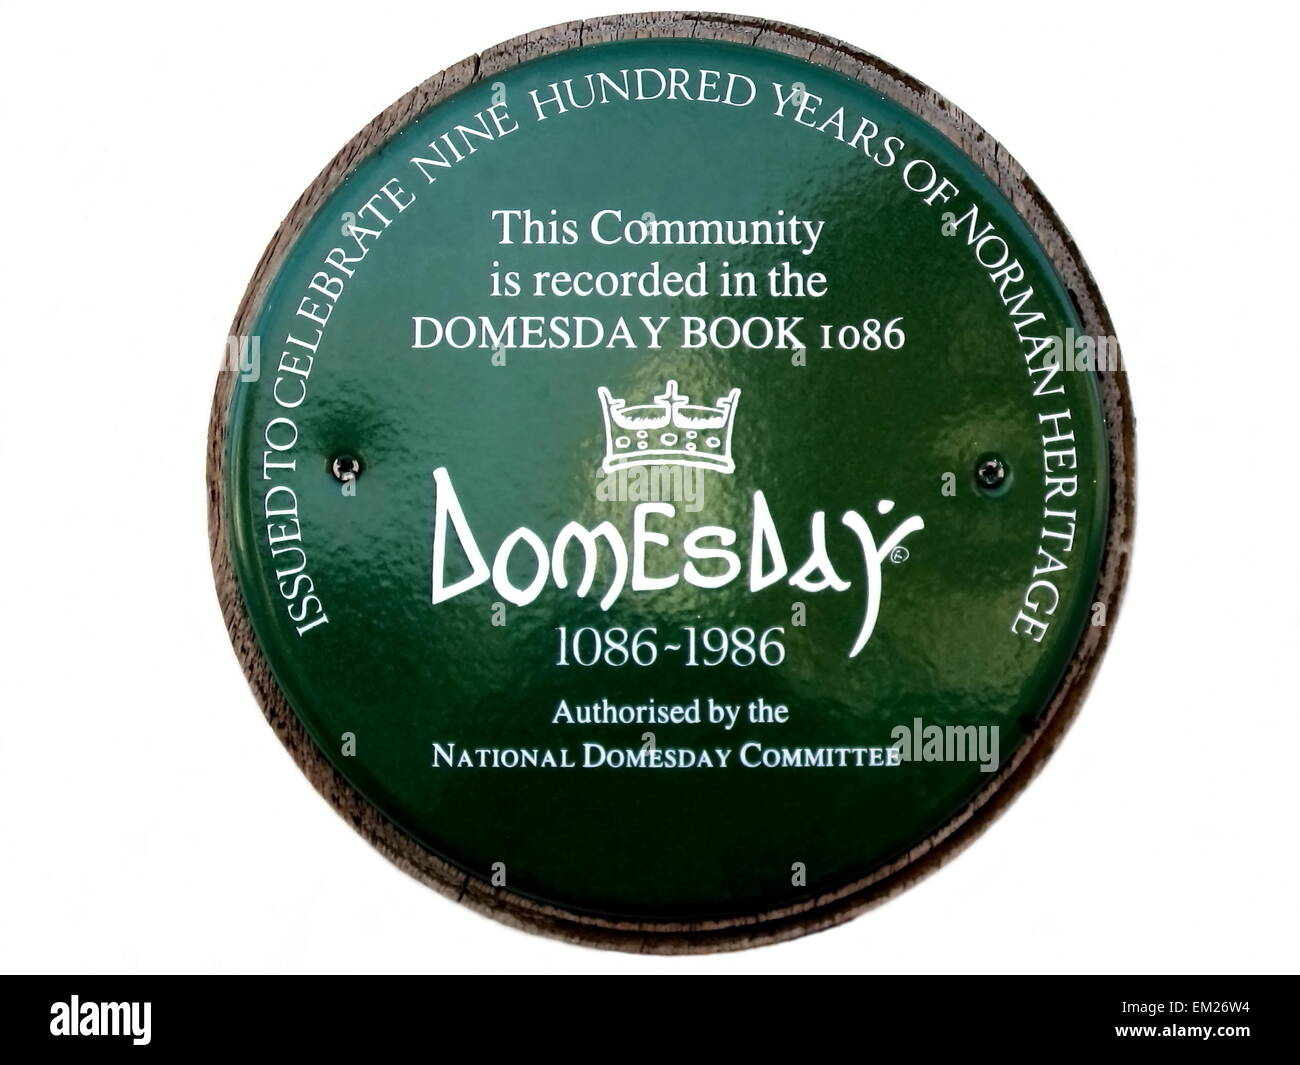 Plaque celebrating 900 years of Norman Heritage at Takely Essex, the community having been recorded in the Domesday - Stock Image